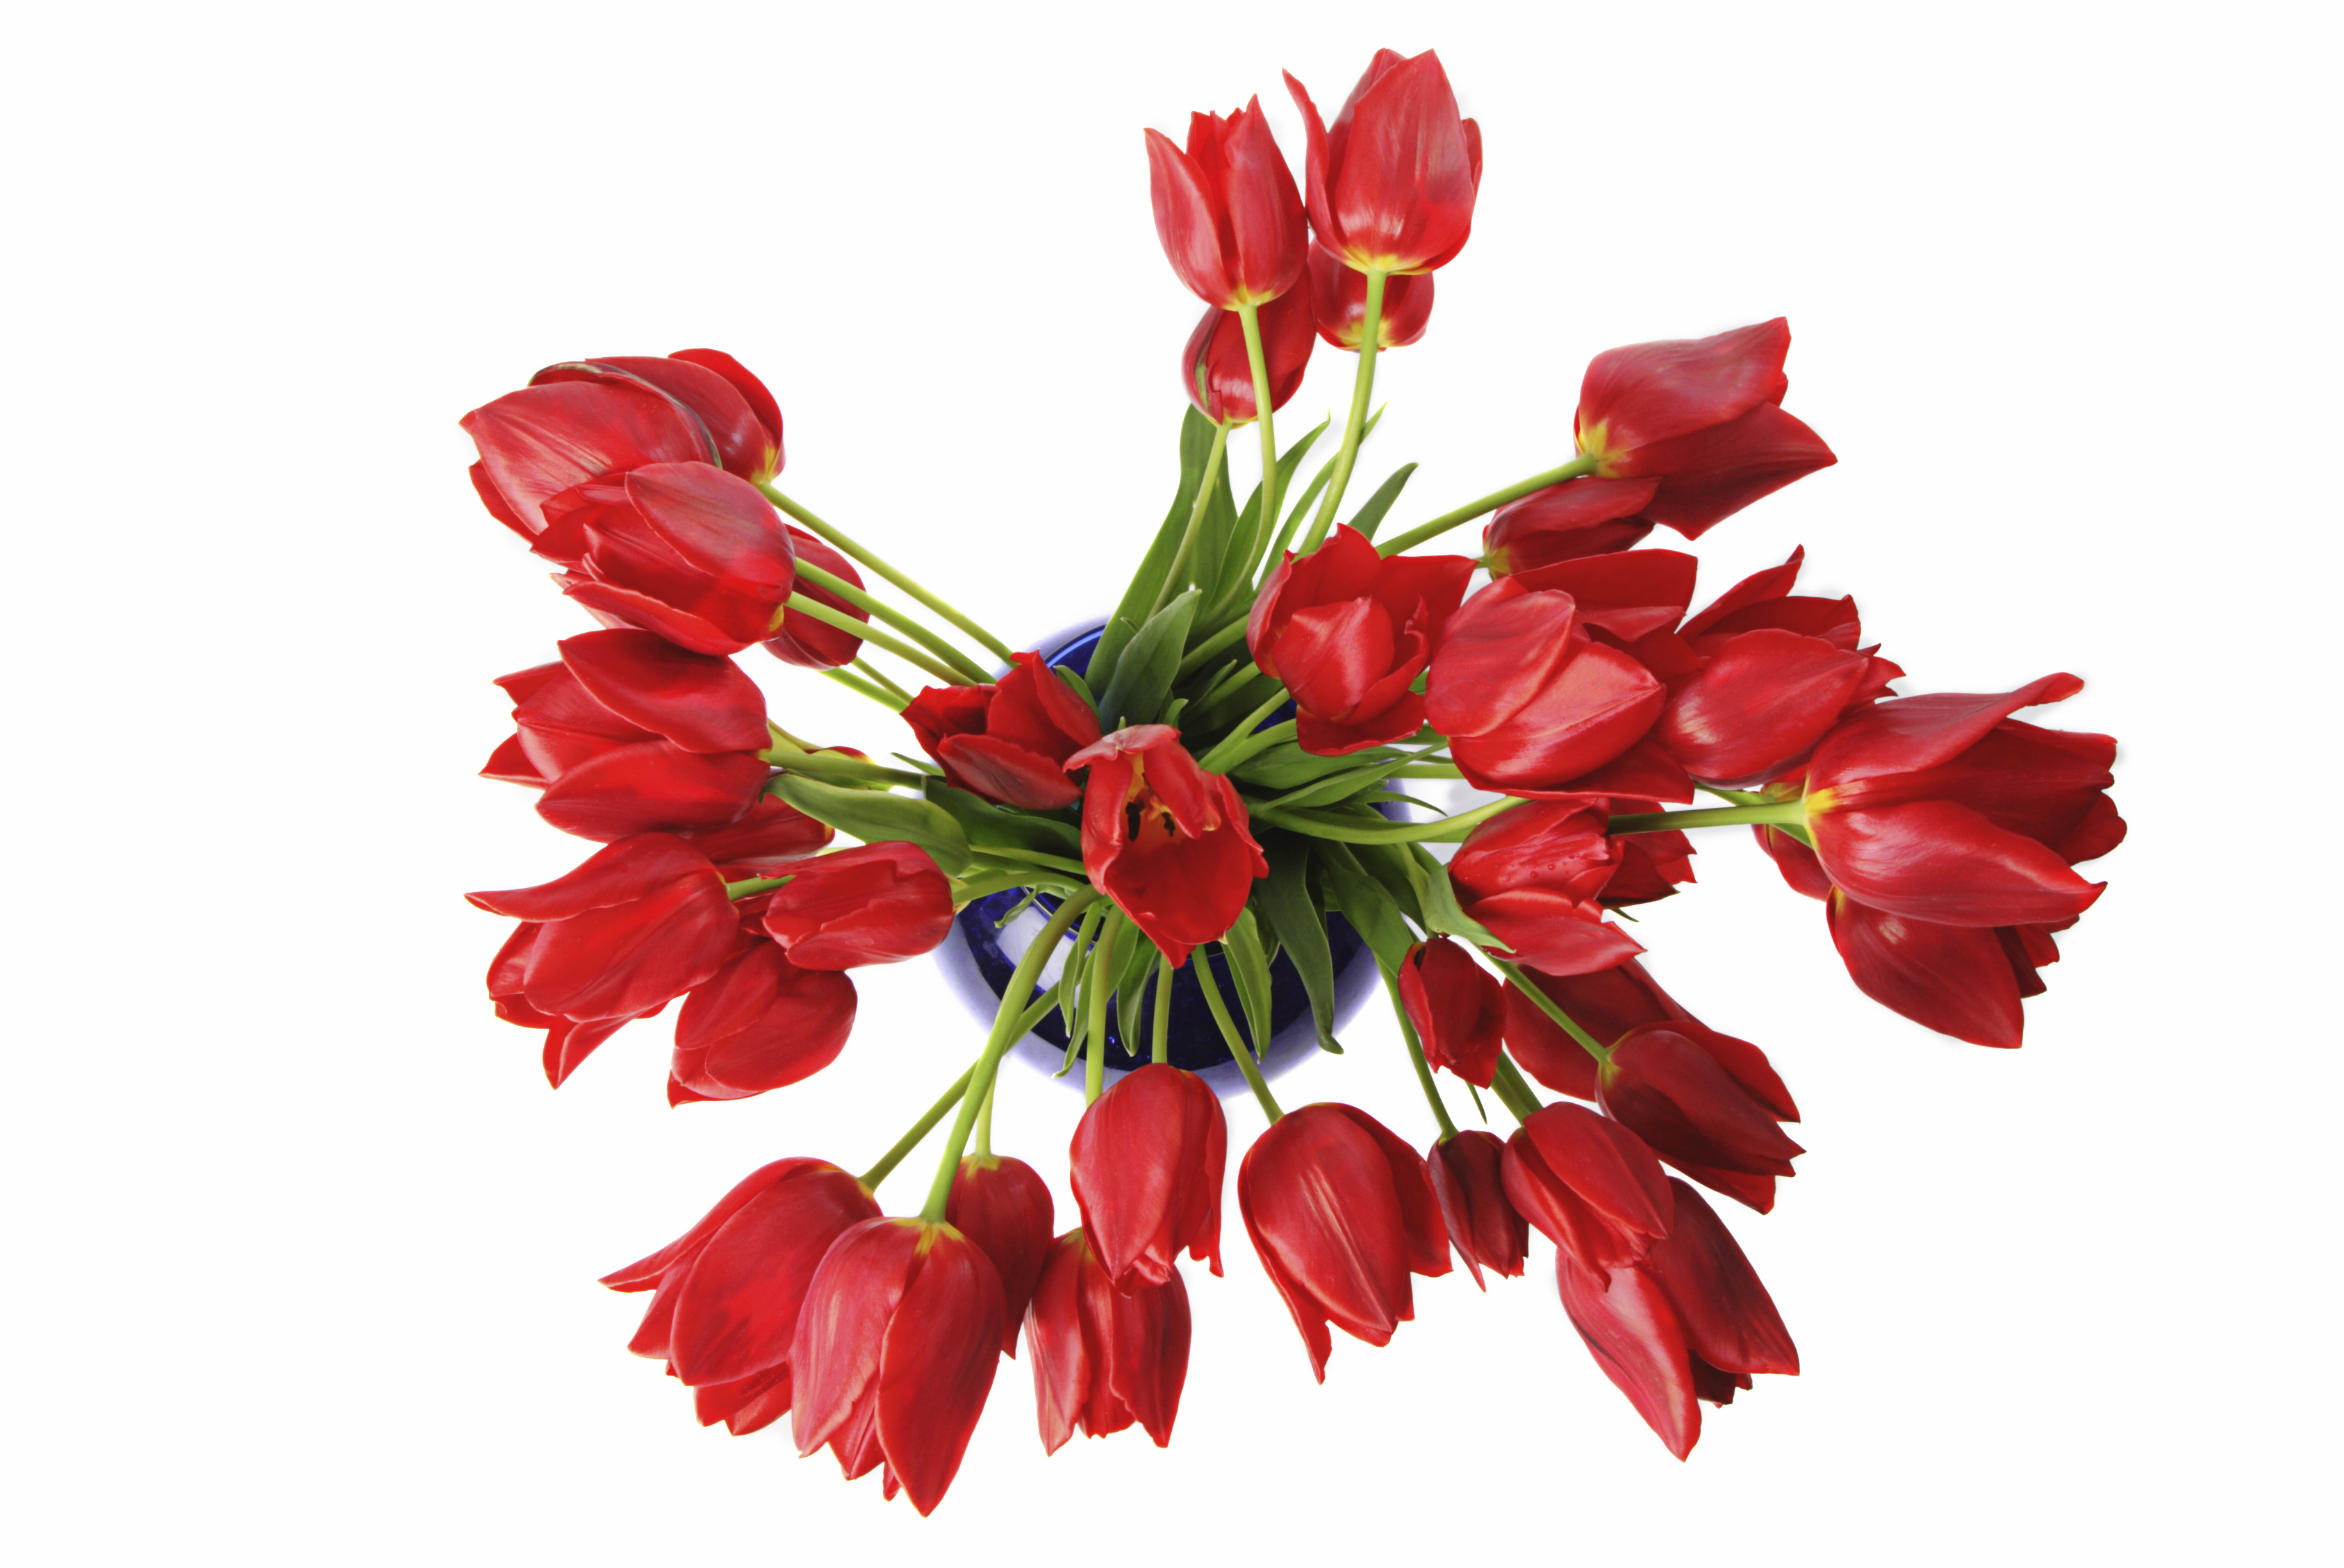 Tulips for Spring at Saturdaysoul.com